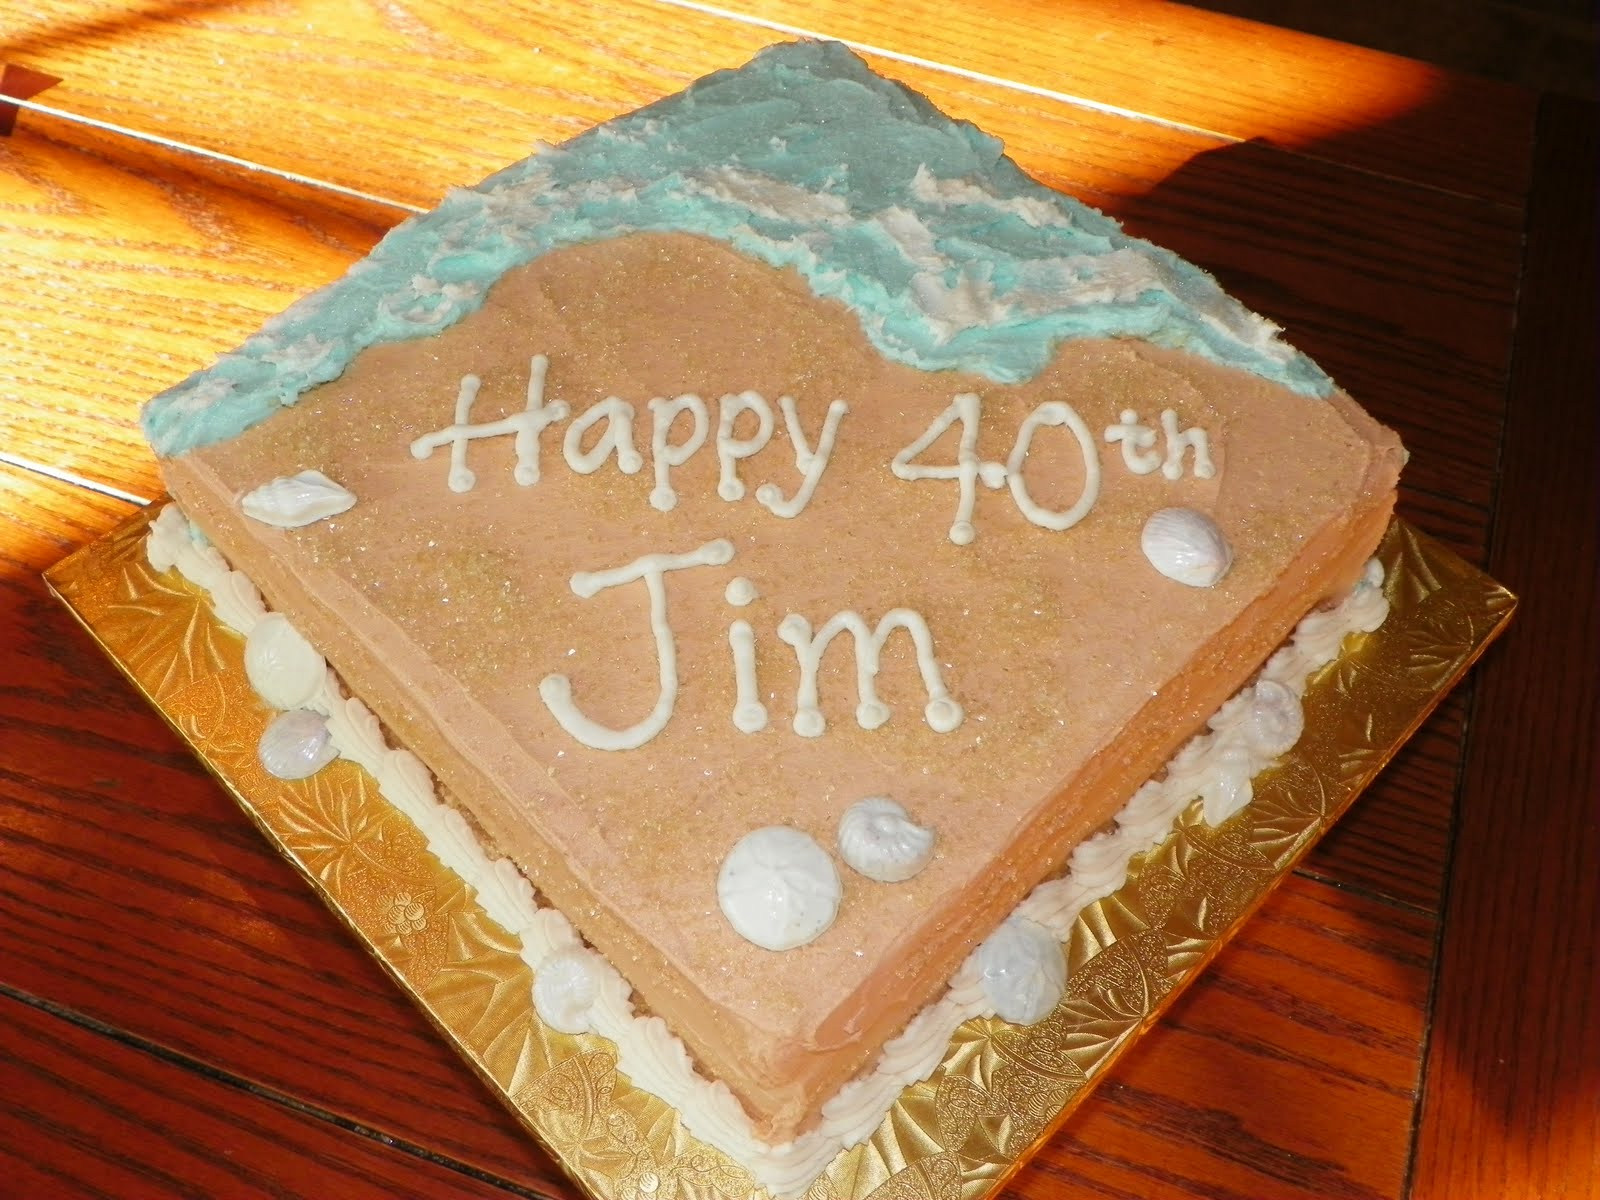 This Cake Is The Big 4 0 Meets Hawaii 5 Simple Birthday Was For A Rained Out Beach Party Who Knew Weird Weather Year